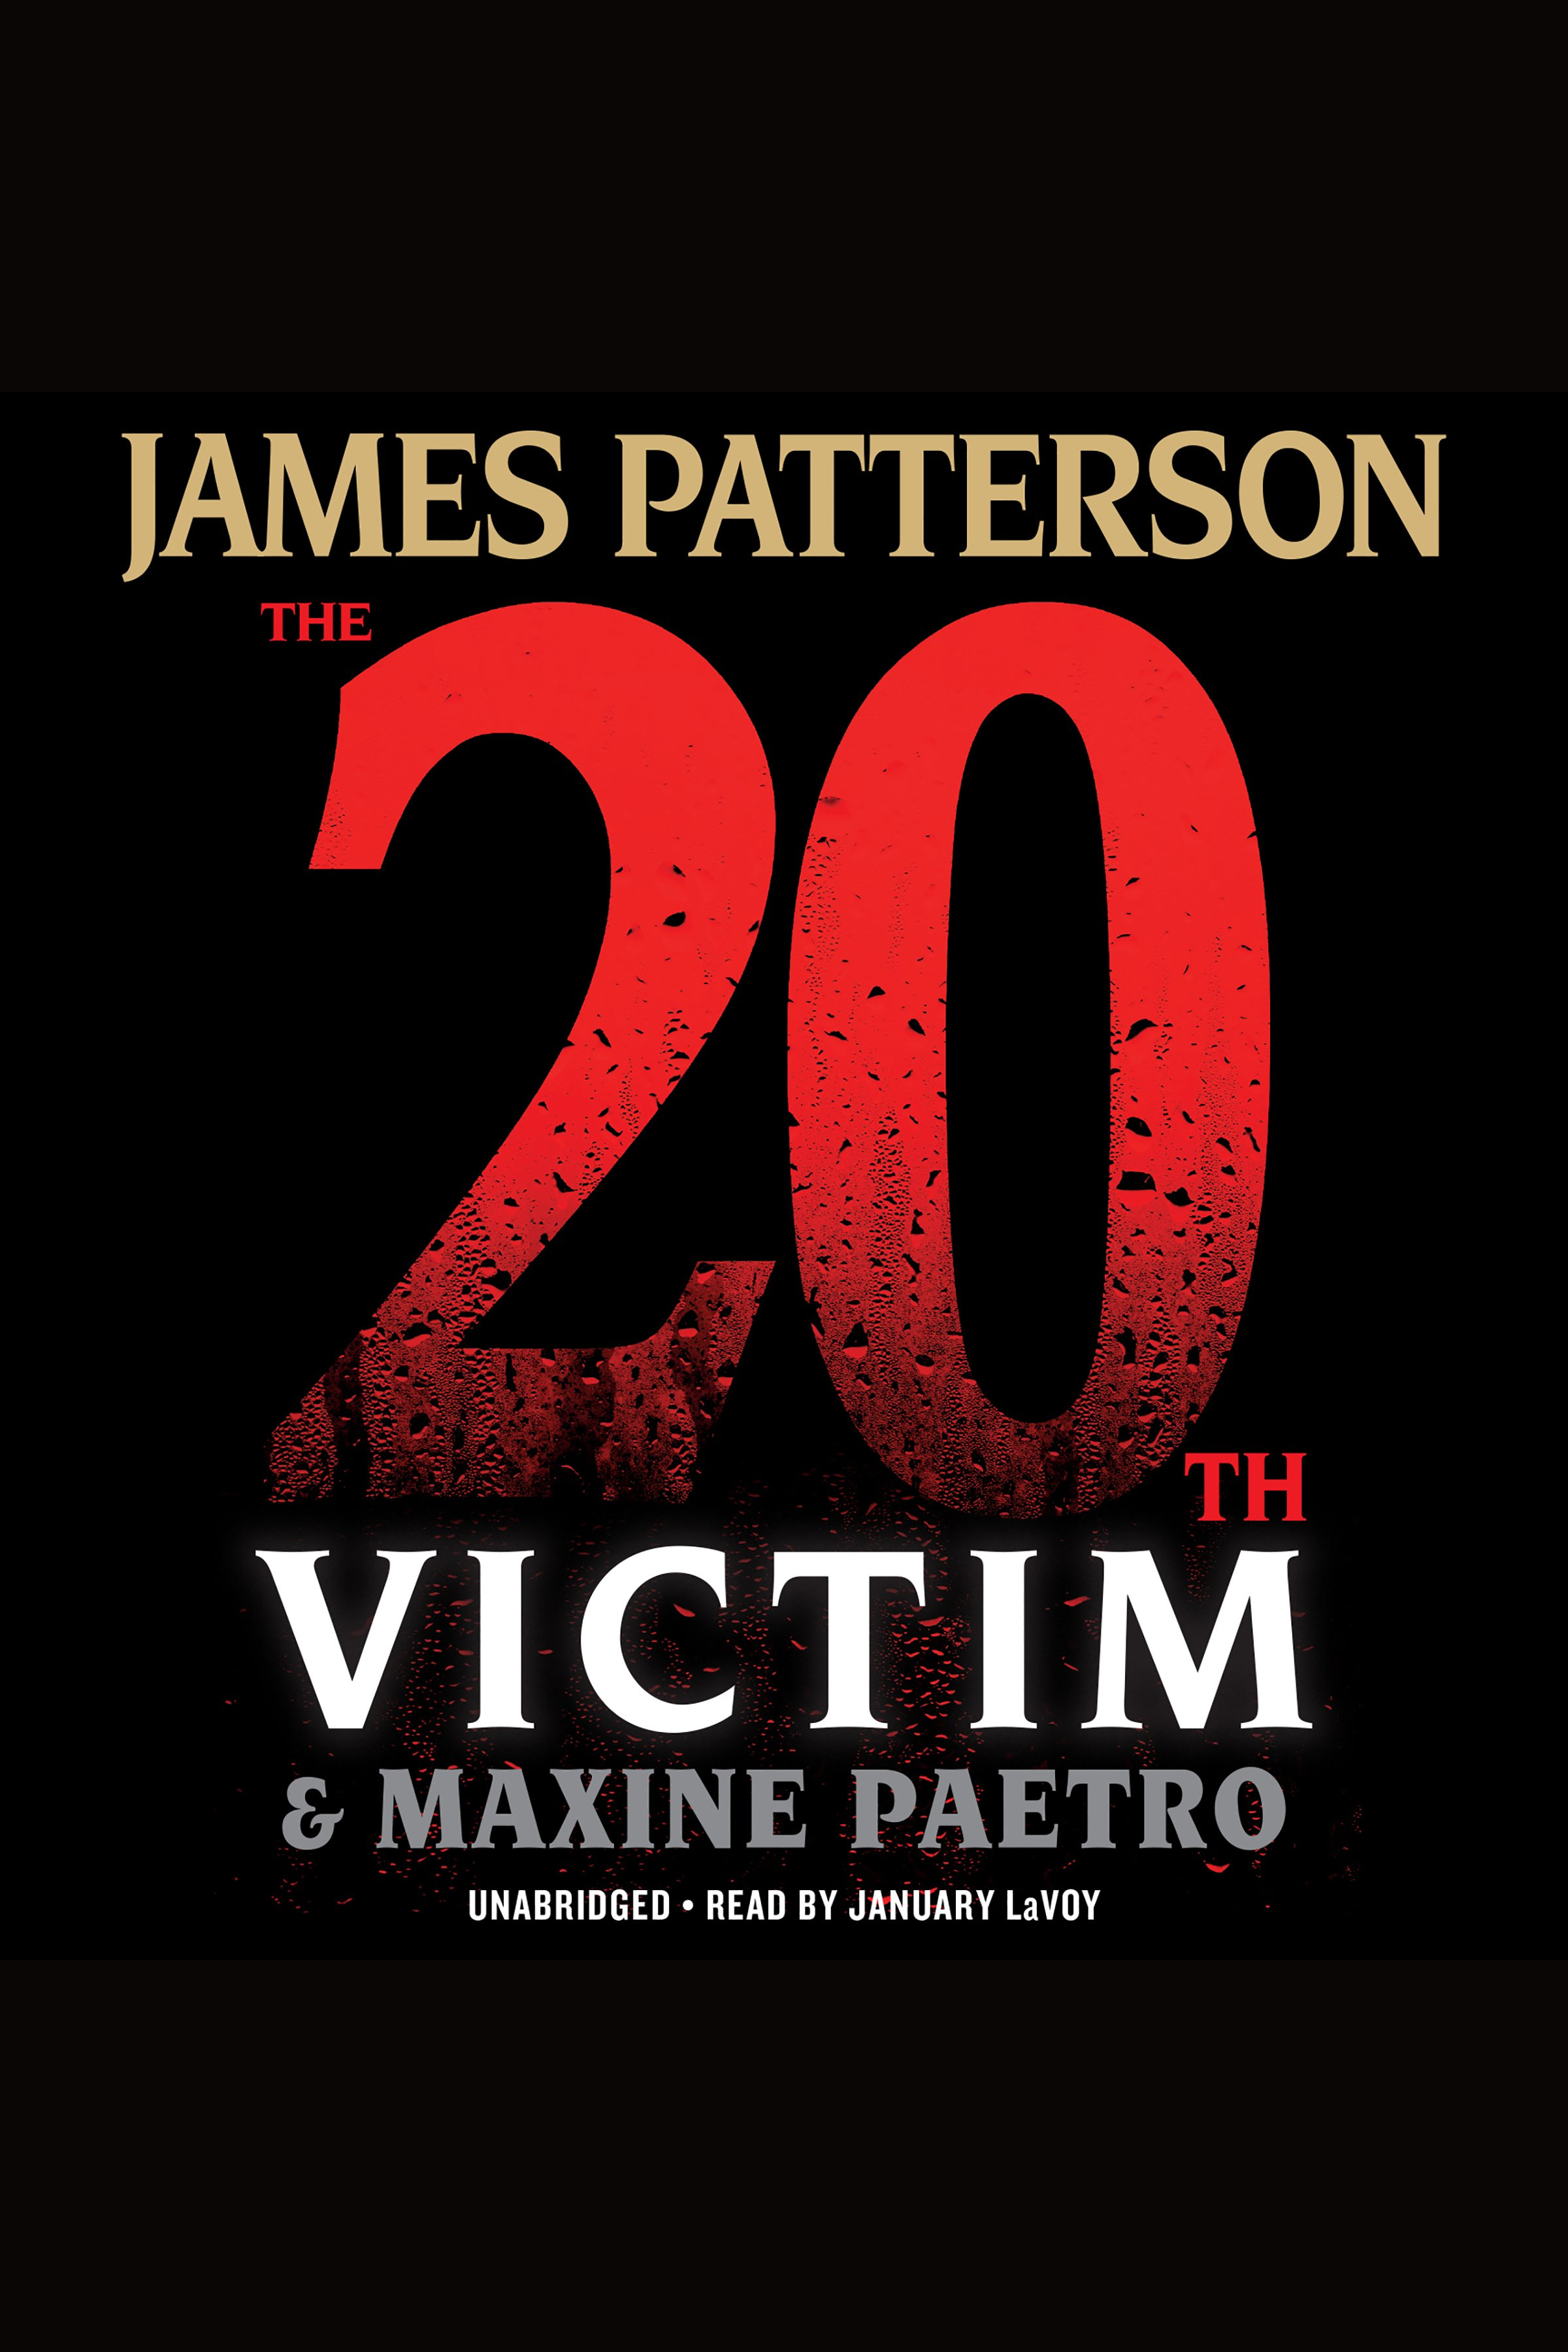 The 20th victim cover image